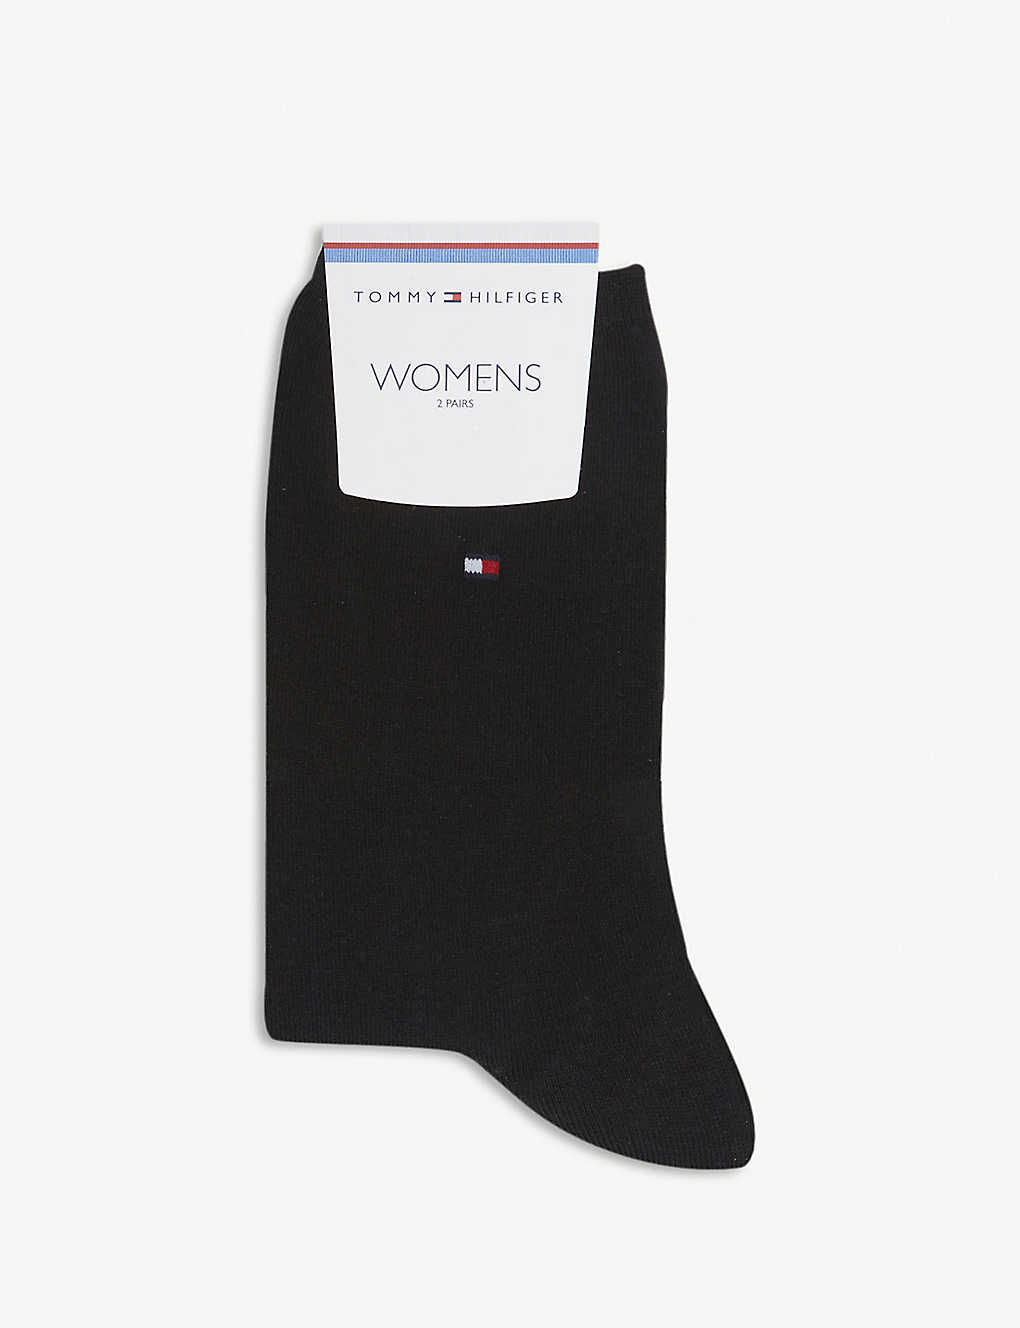 TOMMY HILFIGER: Logo-embroidered casual cotton-blend socks pack of two